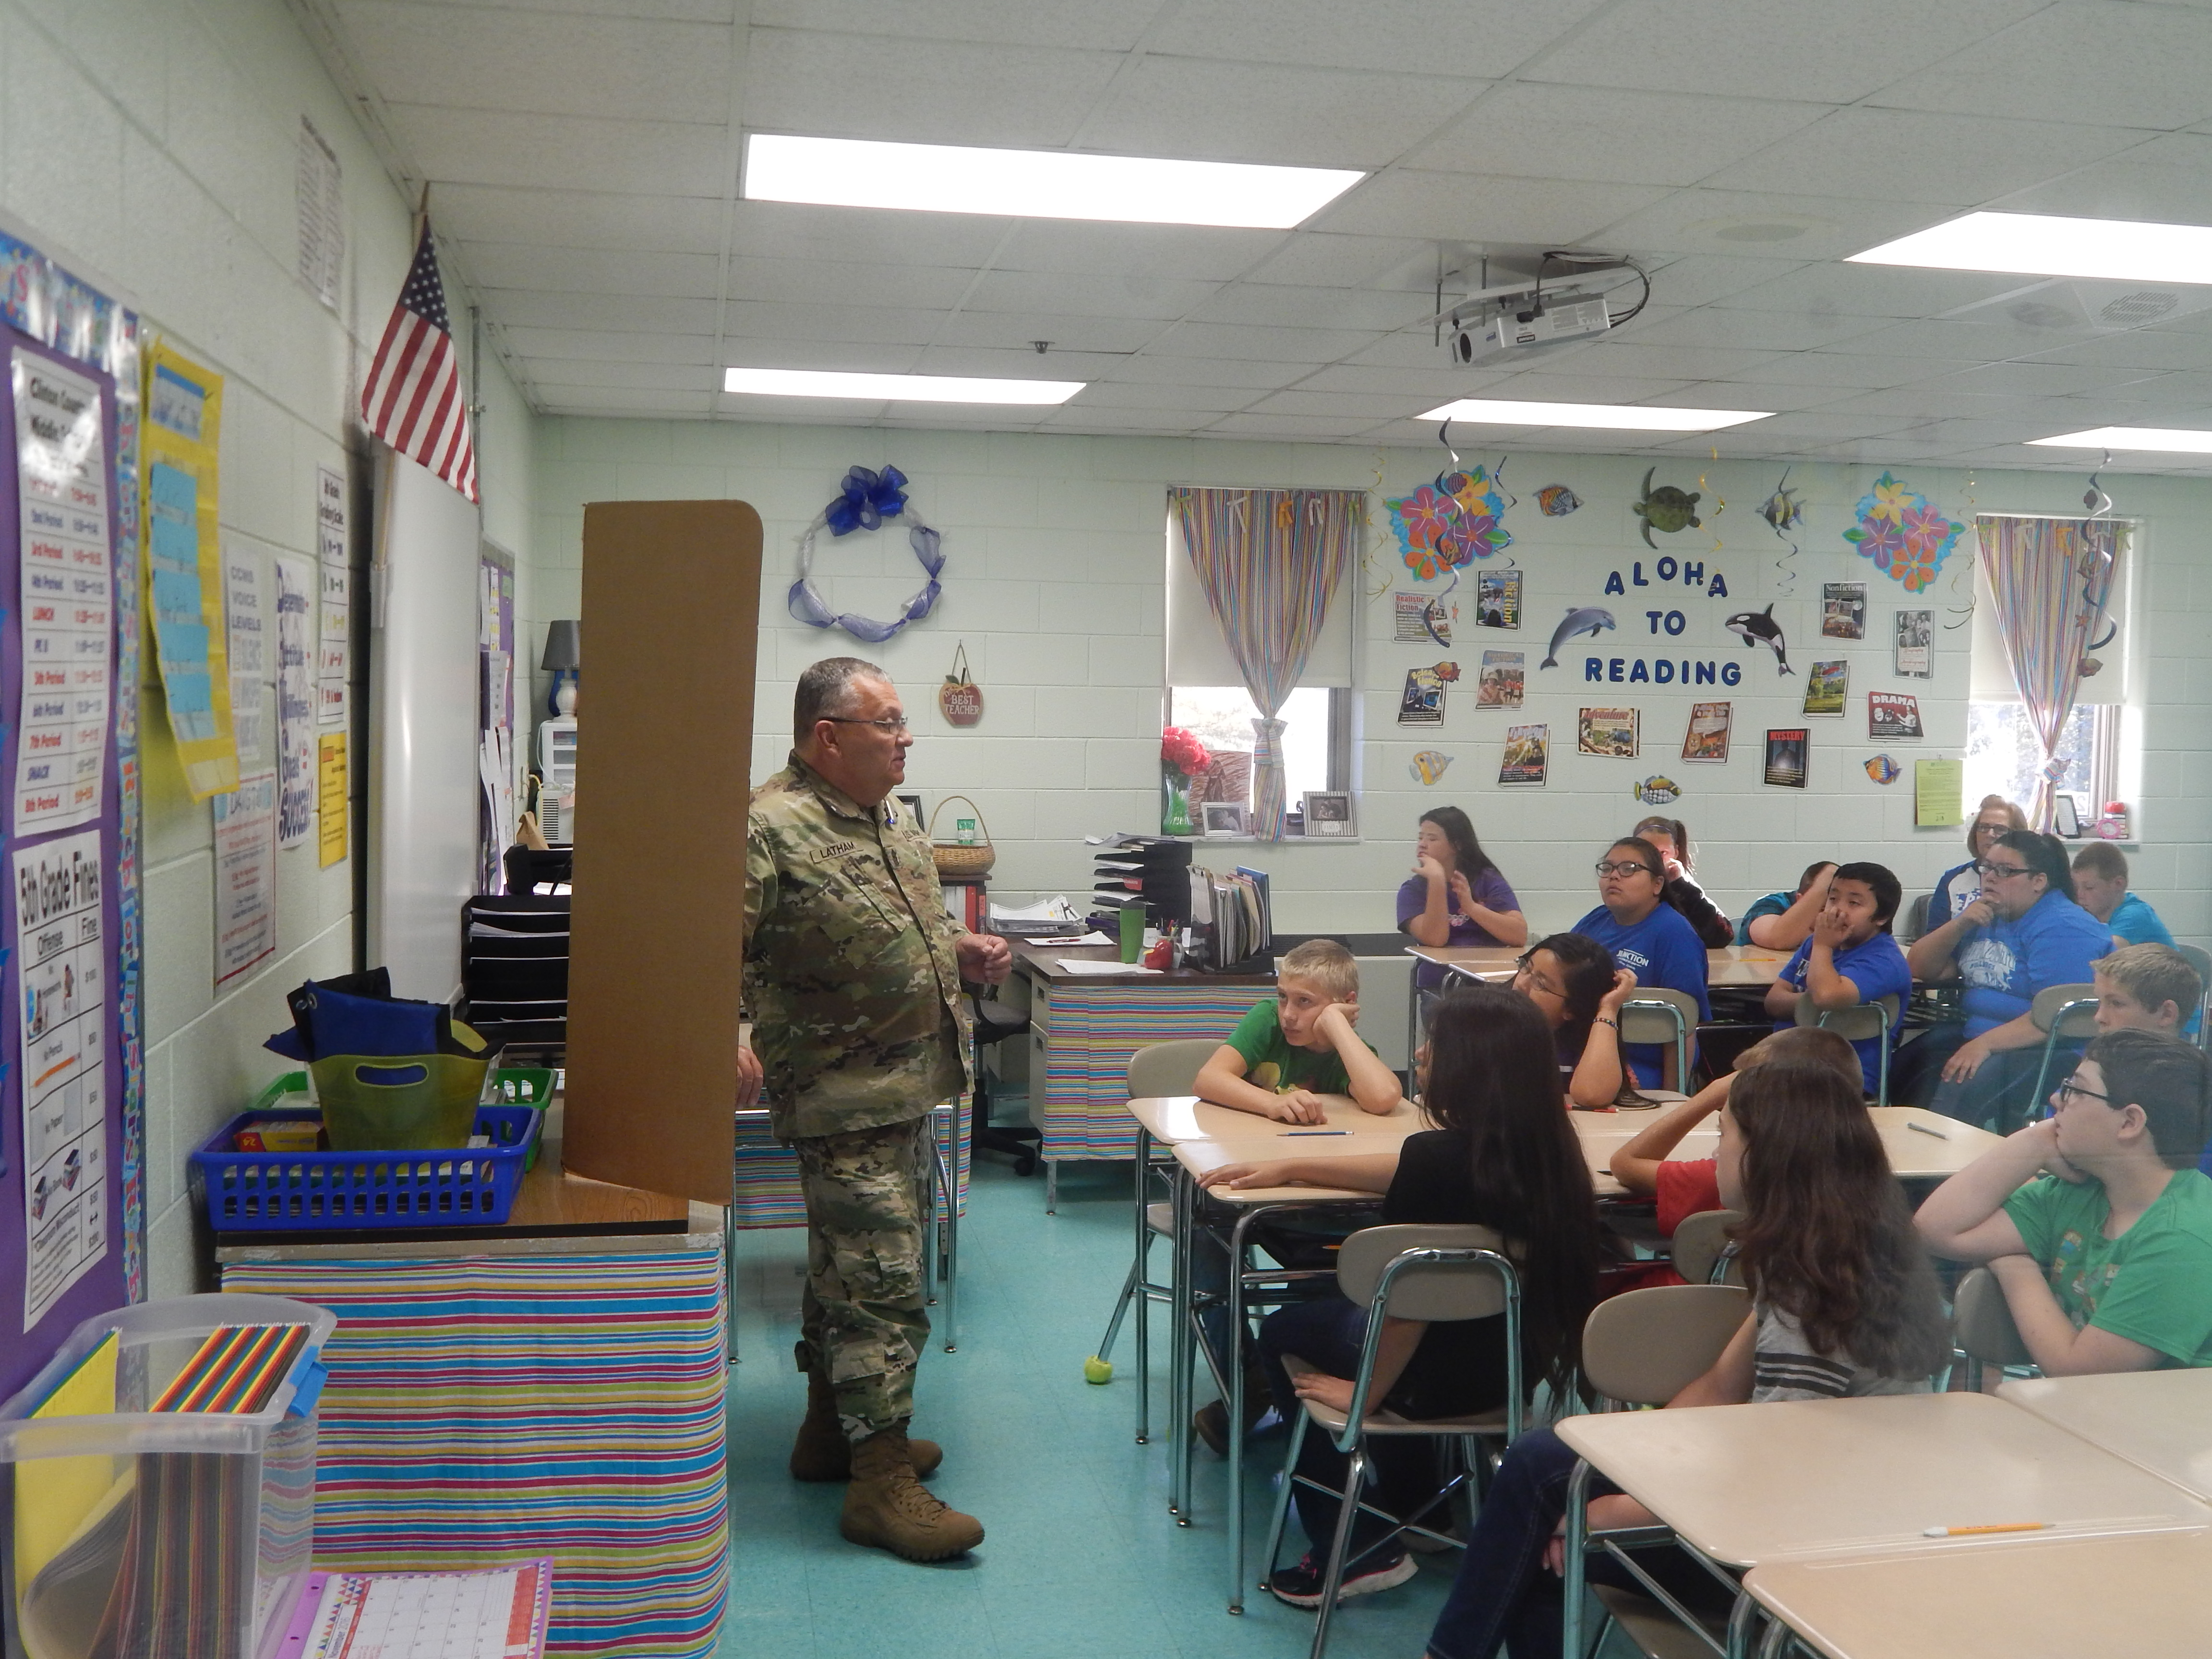 Students in 5th, 6th, 7th, and 8th grades at Clinton County Middle School were introduced to real jobs by community volunteers at Career Day on Friday, November 4th.